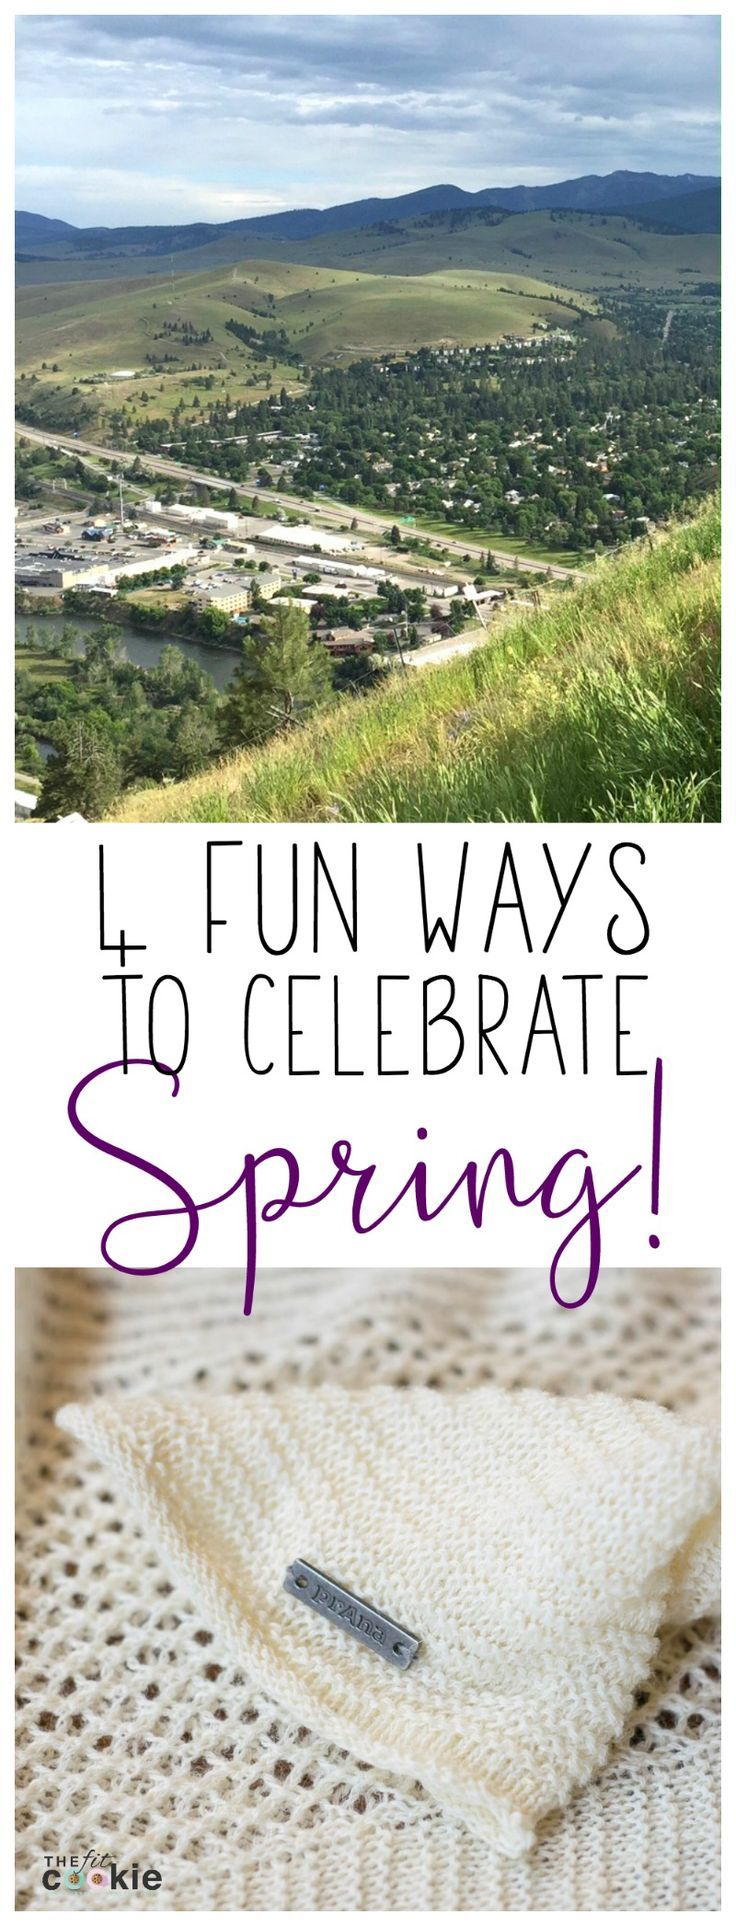 The first day of Spring is right around the corner! Here are 4 fun ways to celebrate Spring (you'll love #4!) - @TheFitCookie #ad @prAna  @fitapproach  #sweatpink #Spring4prAna #prAnastyle #IAmEmpowered